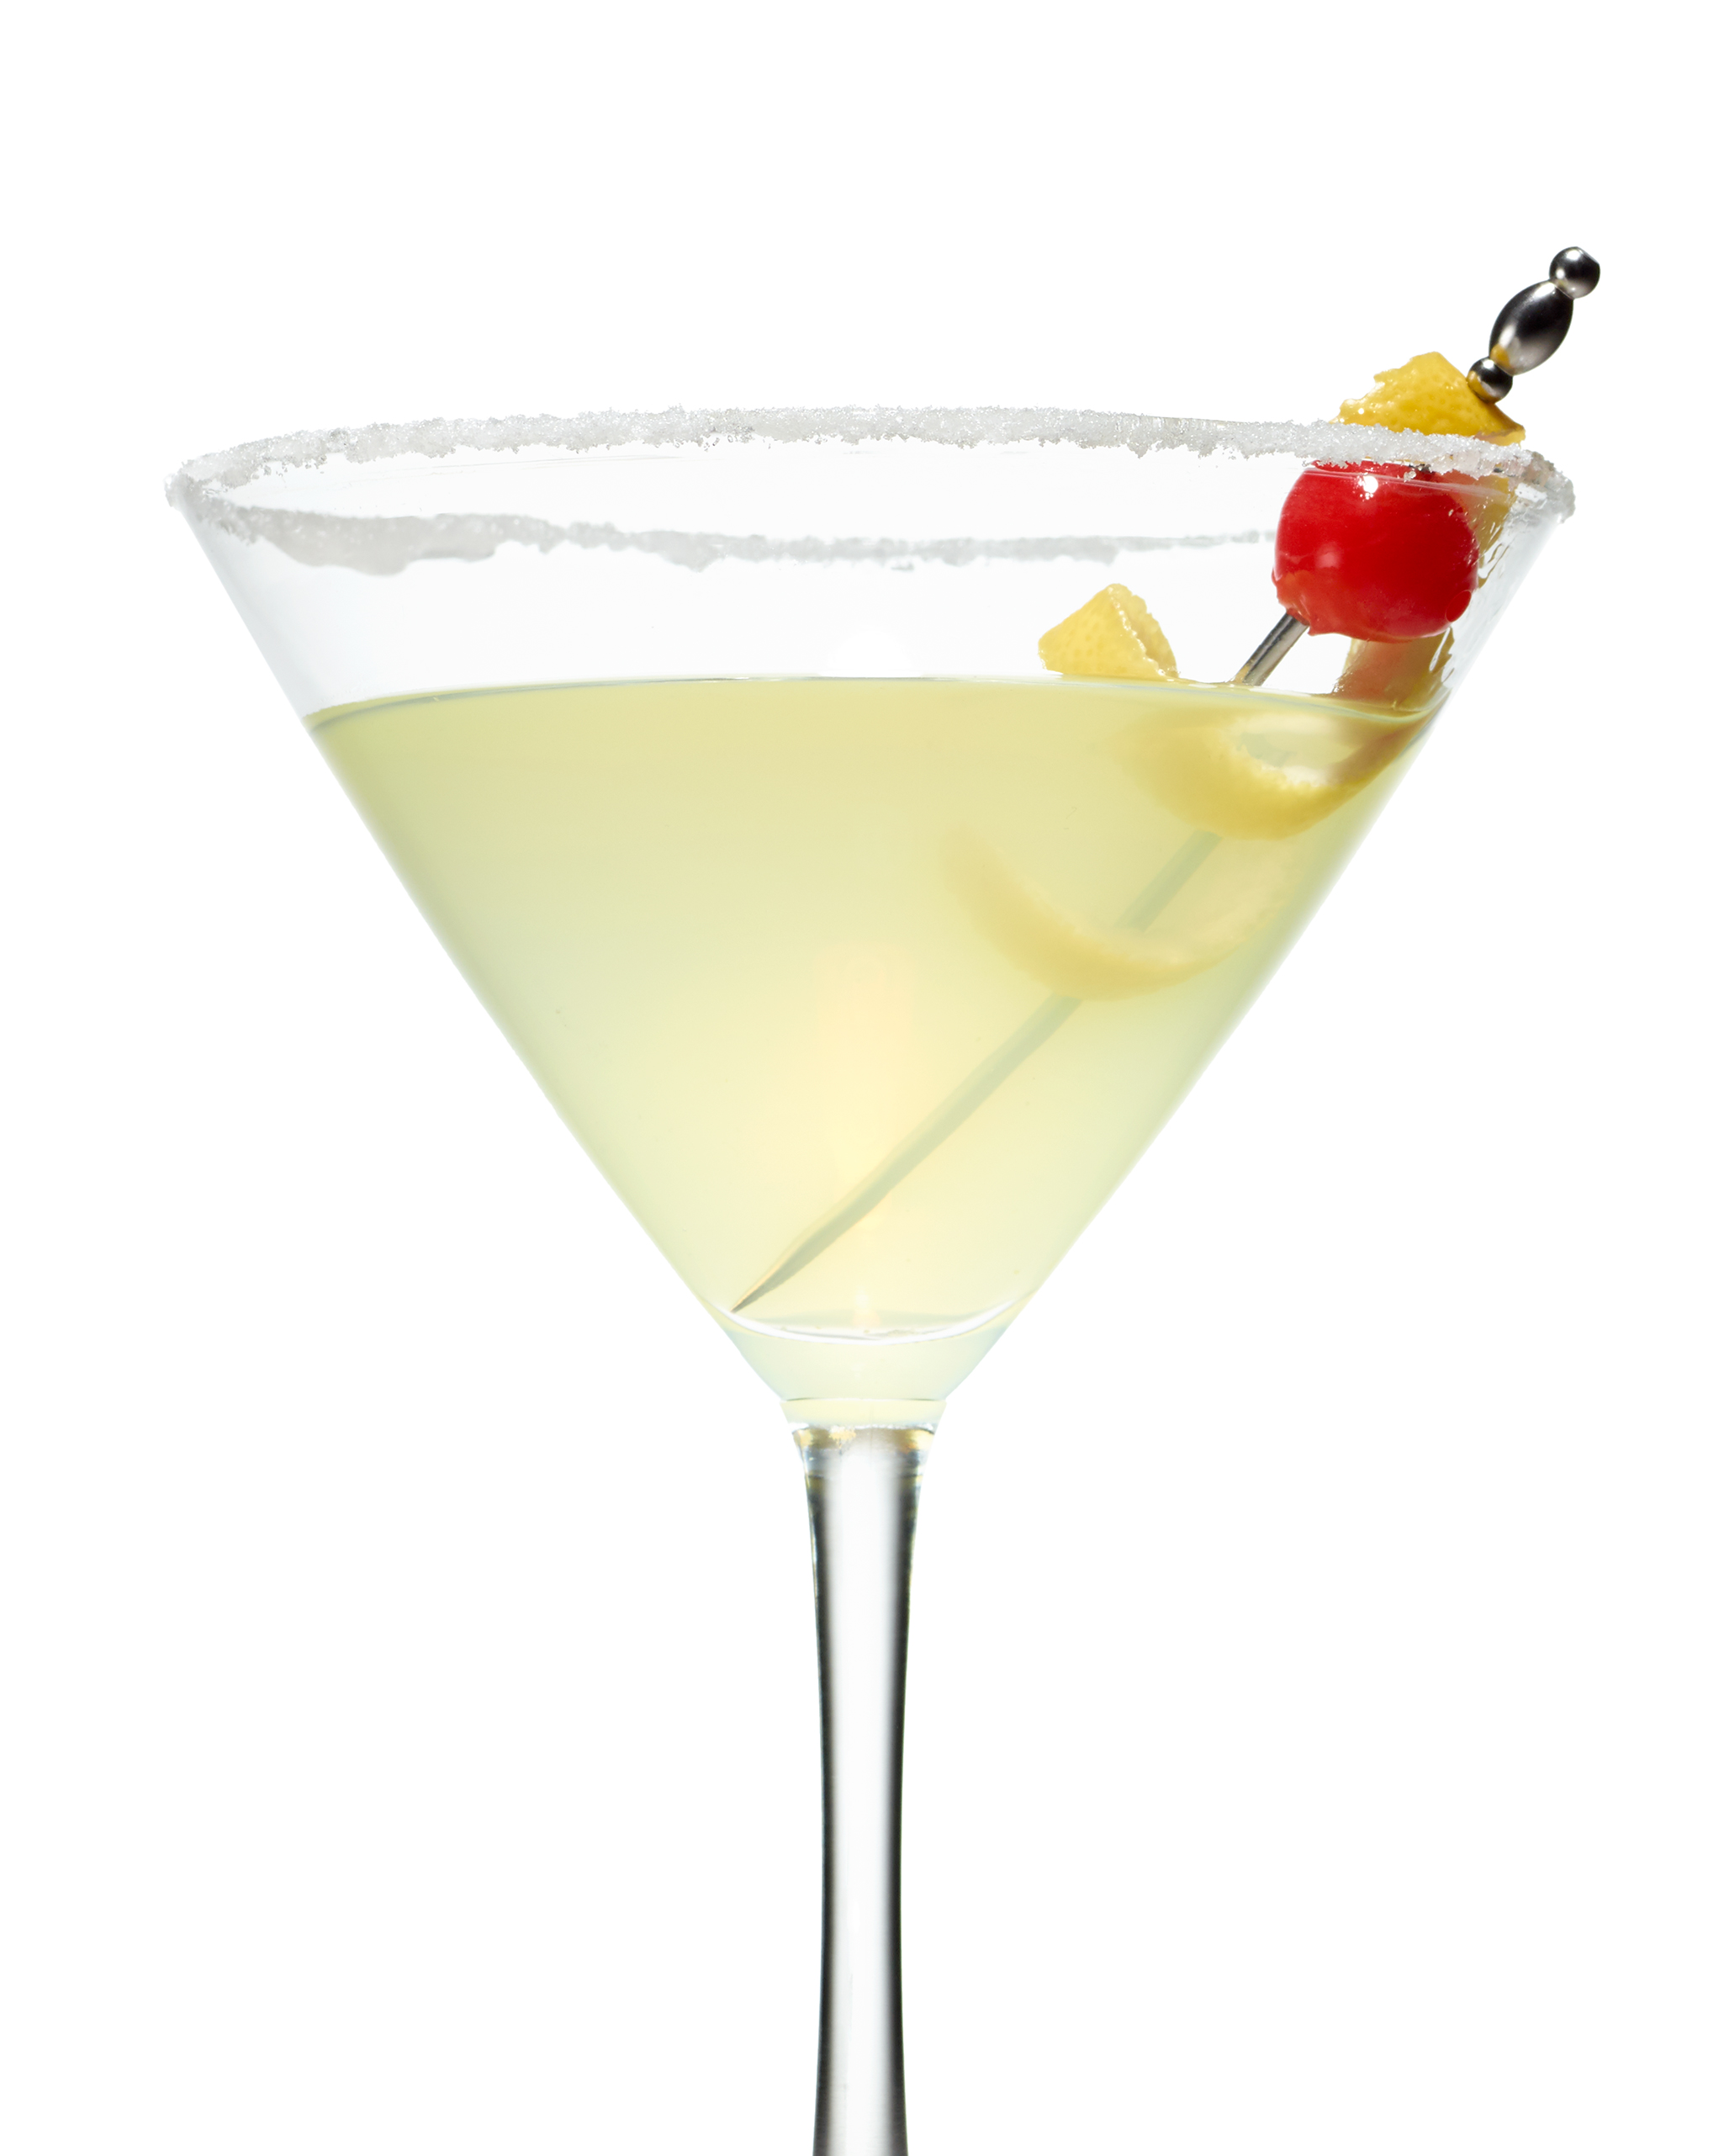 lemon_drop_lemon_drop_martini_0669rt_crop.jpg